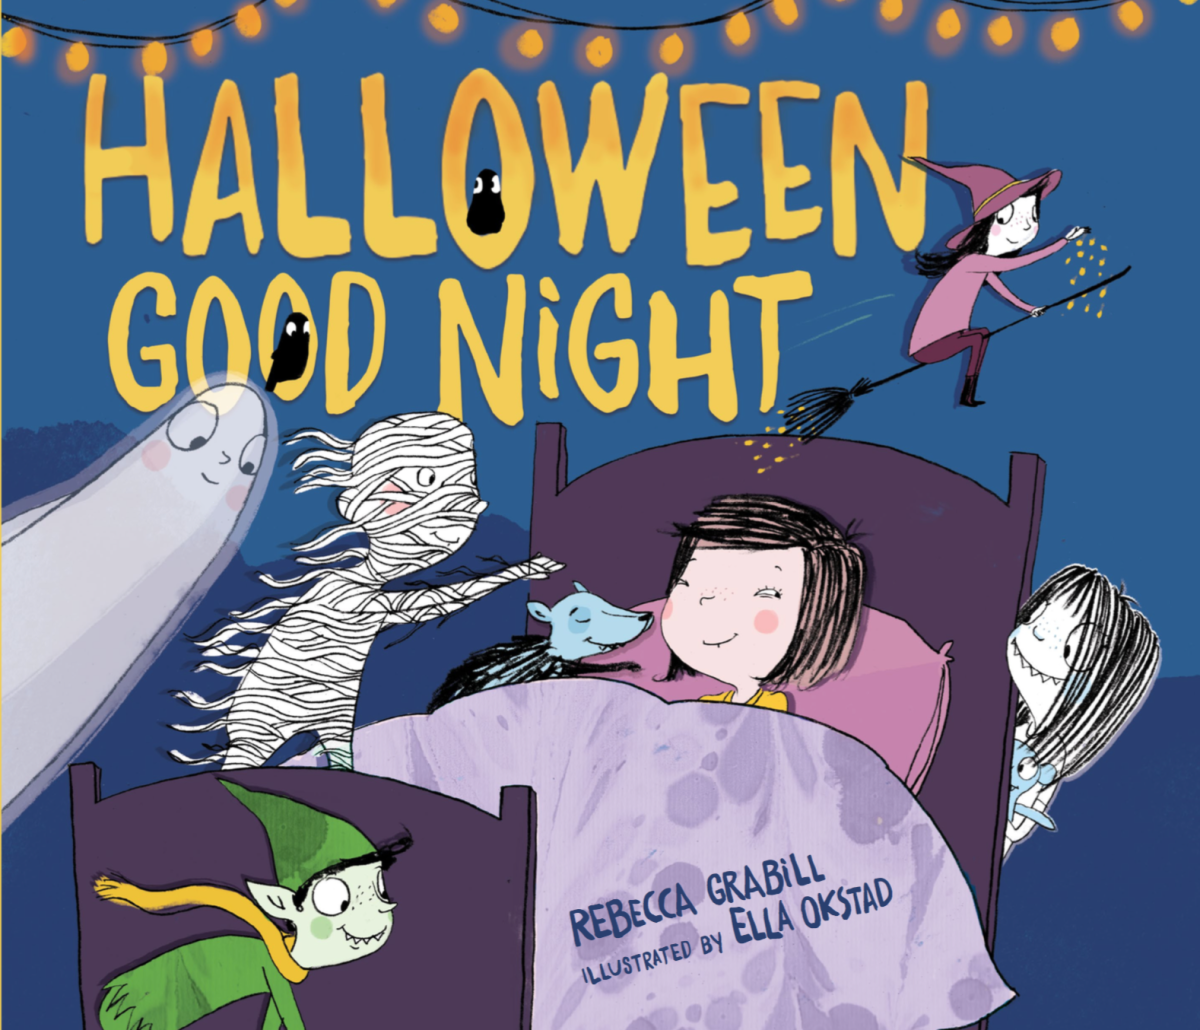 Find out more about the book, Halloween Good Night!